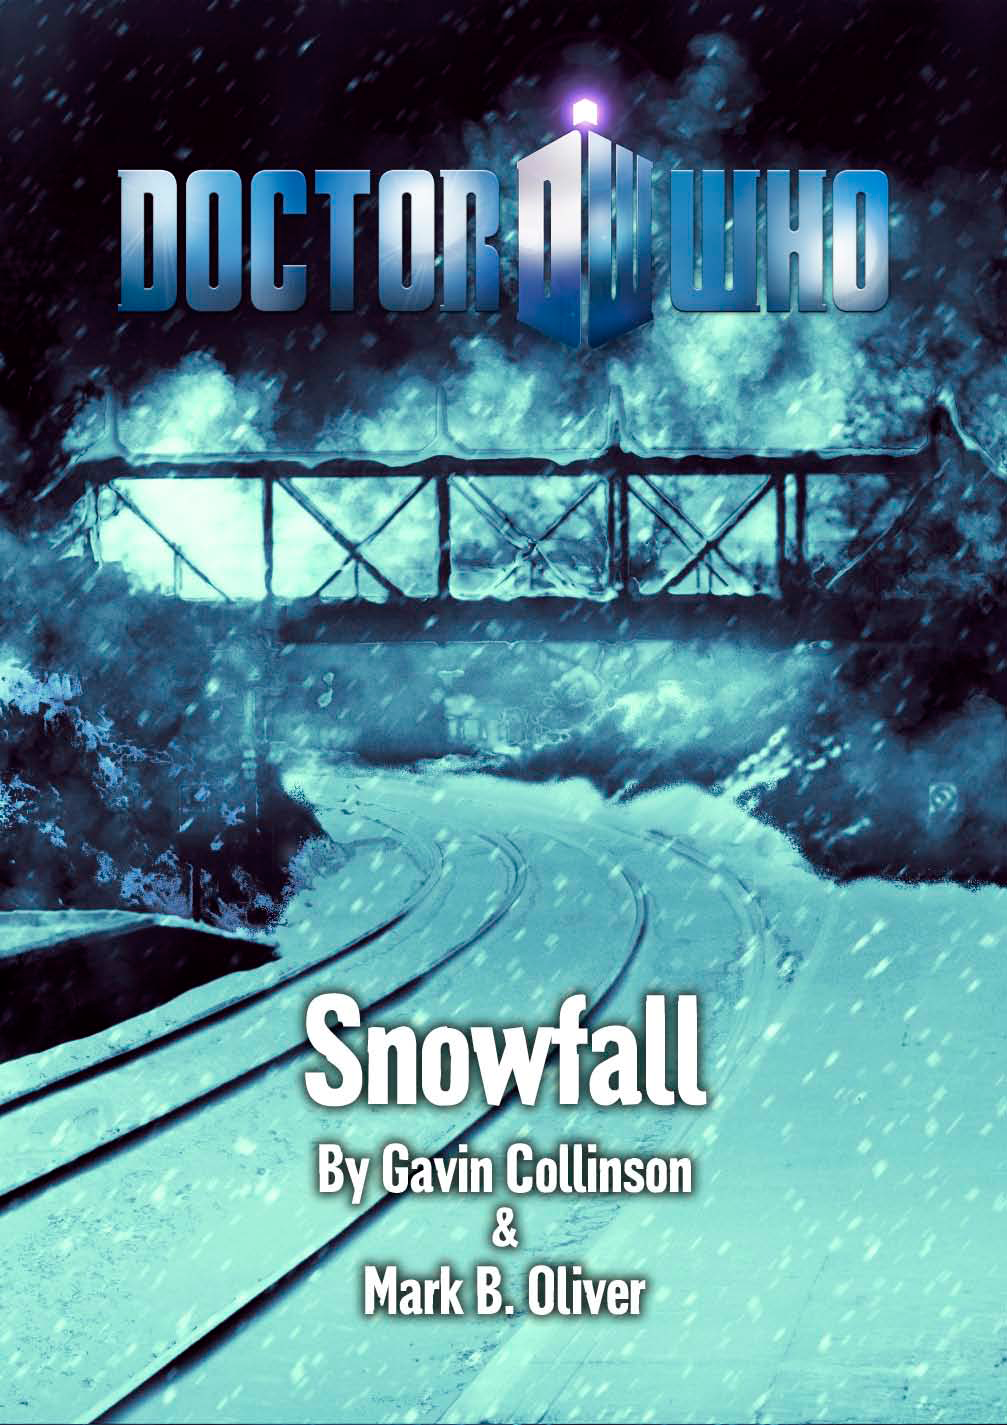 http://images.wikia.com/docteurwho/images/2/28/Snowfall.PNG